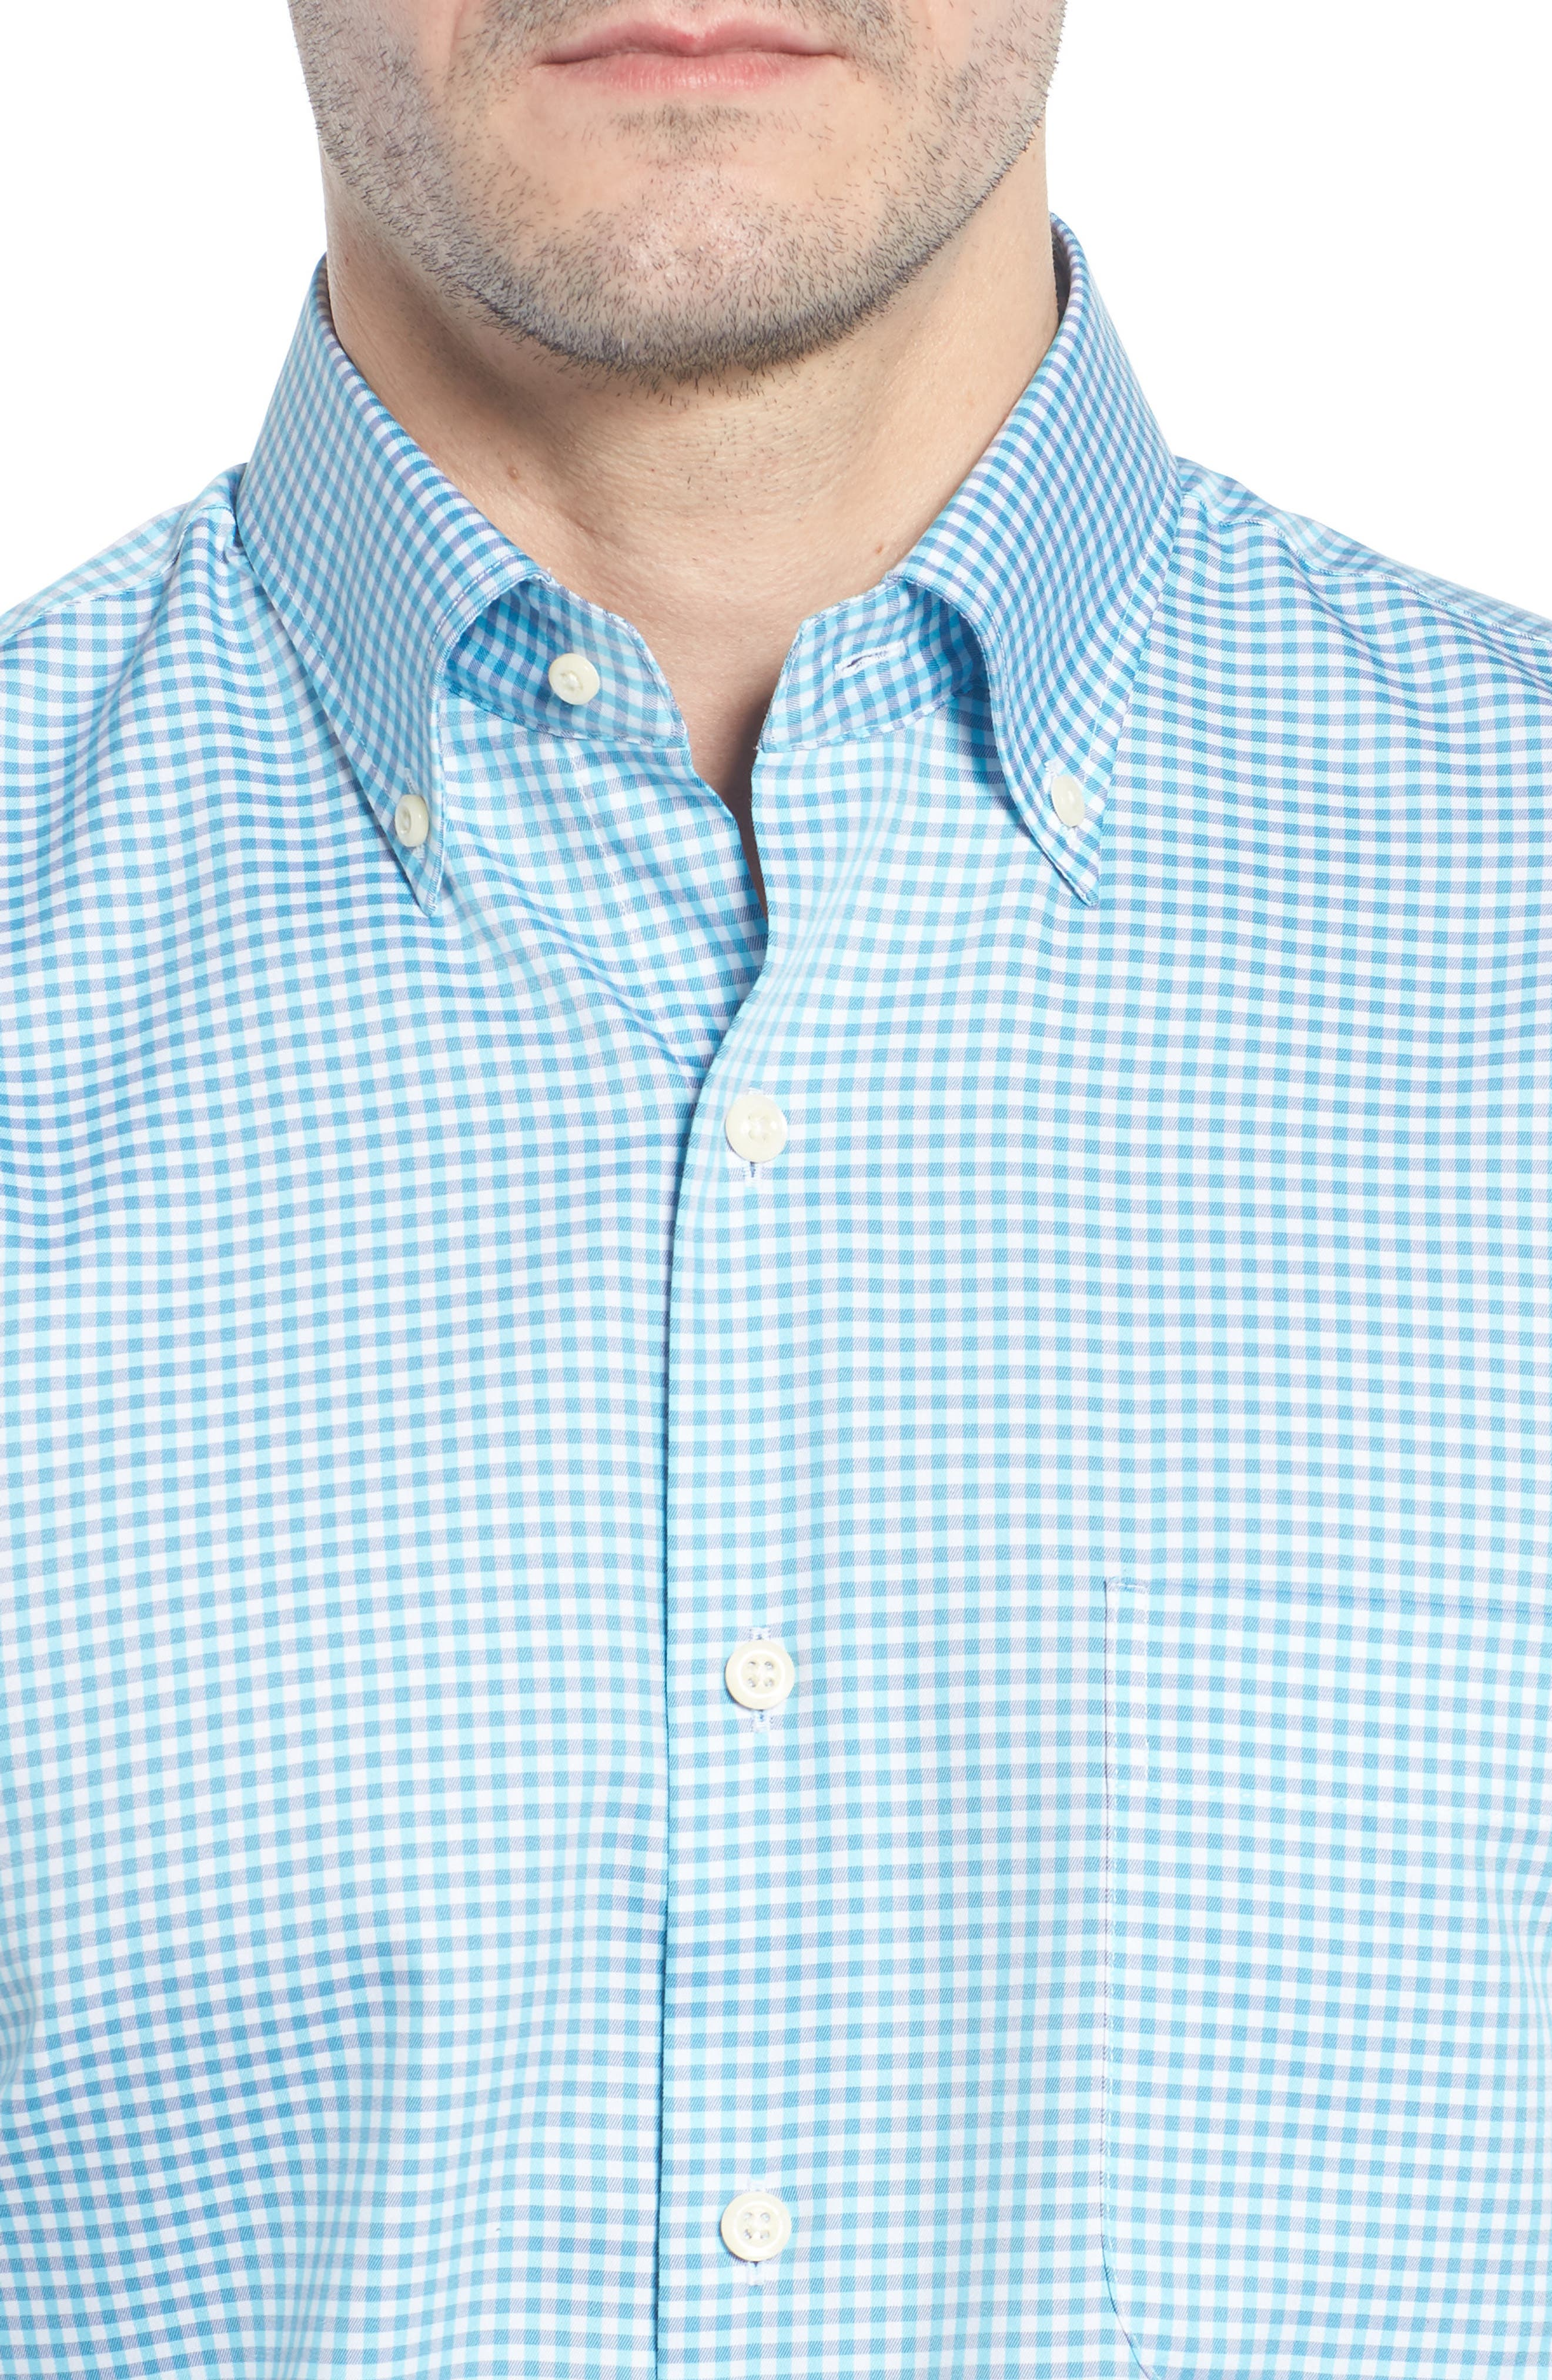 Crown Classic Fit Microcheck Sport Shirt,                             Alternate thumbnail 4, color,                             439